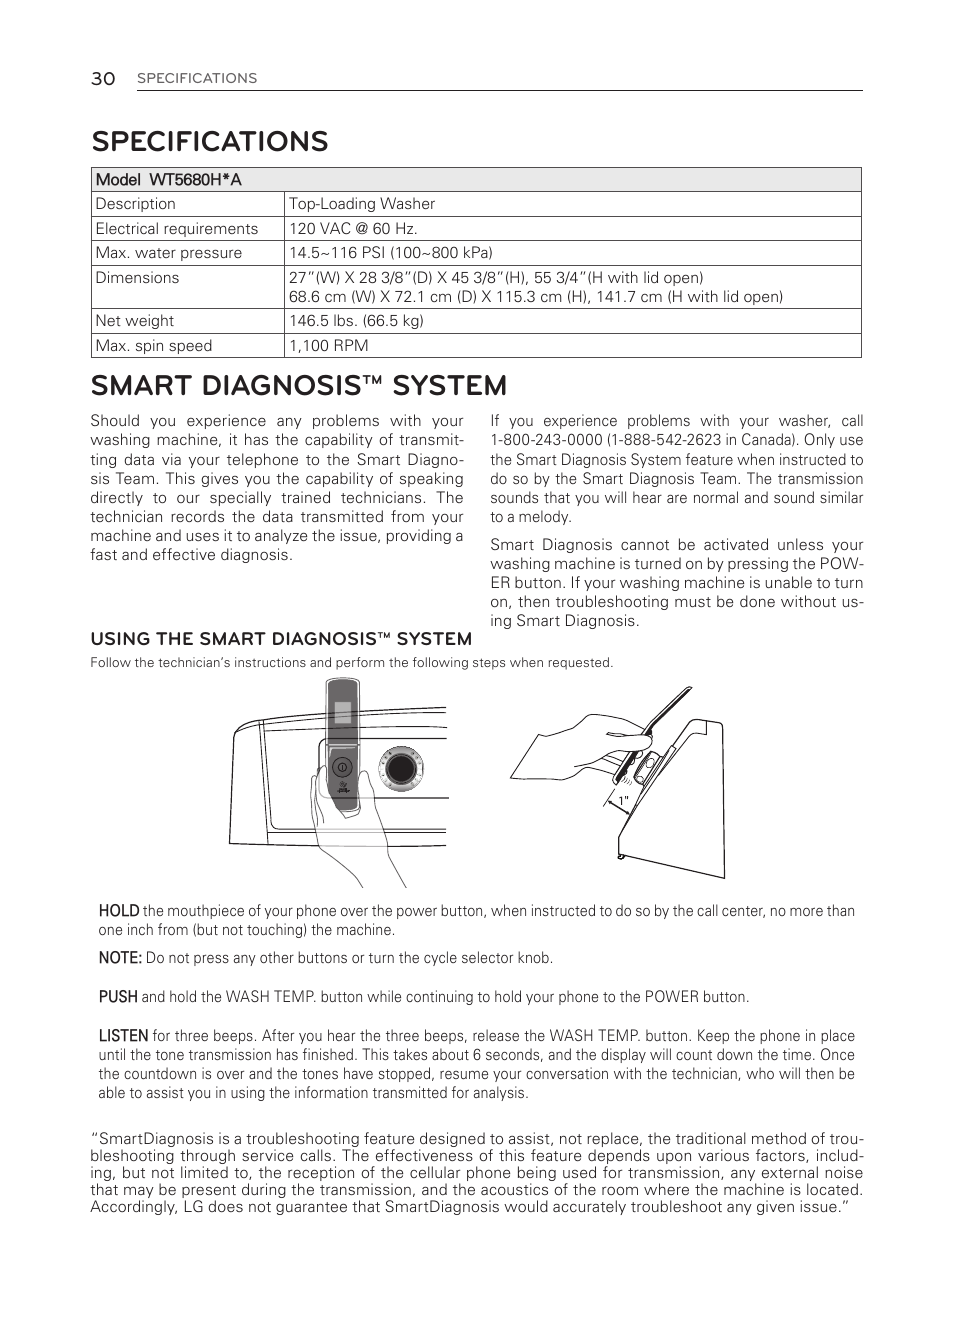 Specifications, Smart diagnosis™ system | LG WT5680HWA